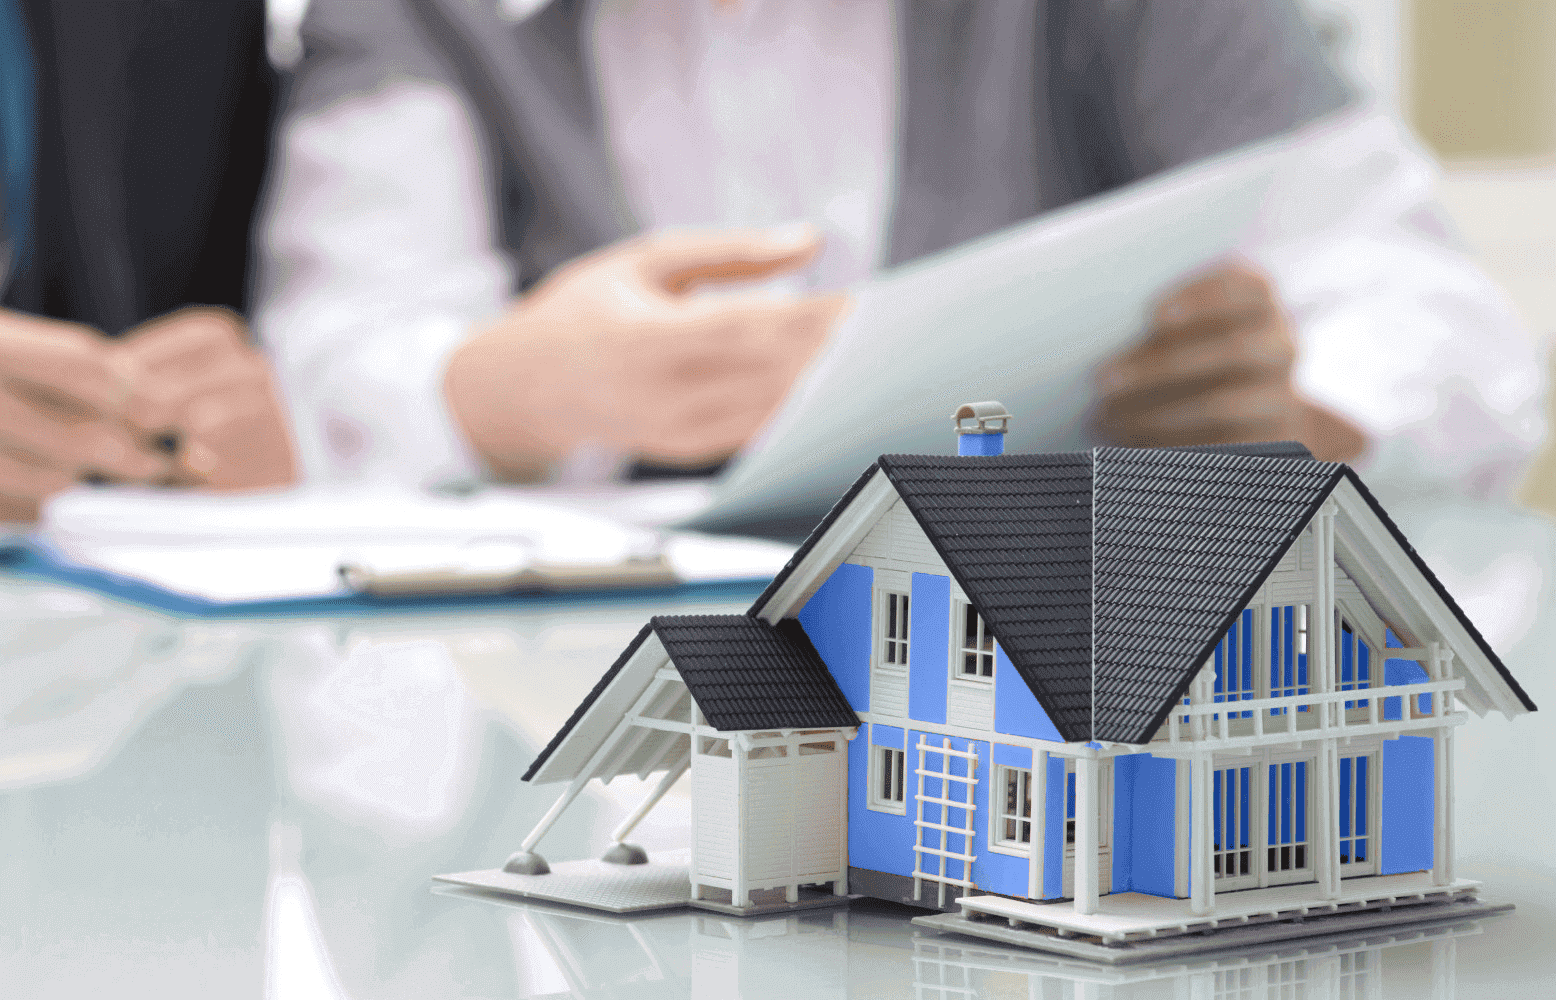 factors-contributed-losing-house-bankruptcy-experts